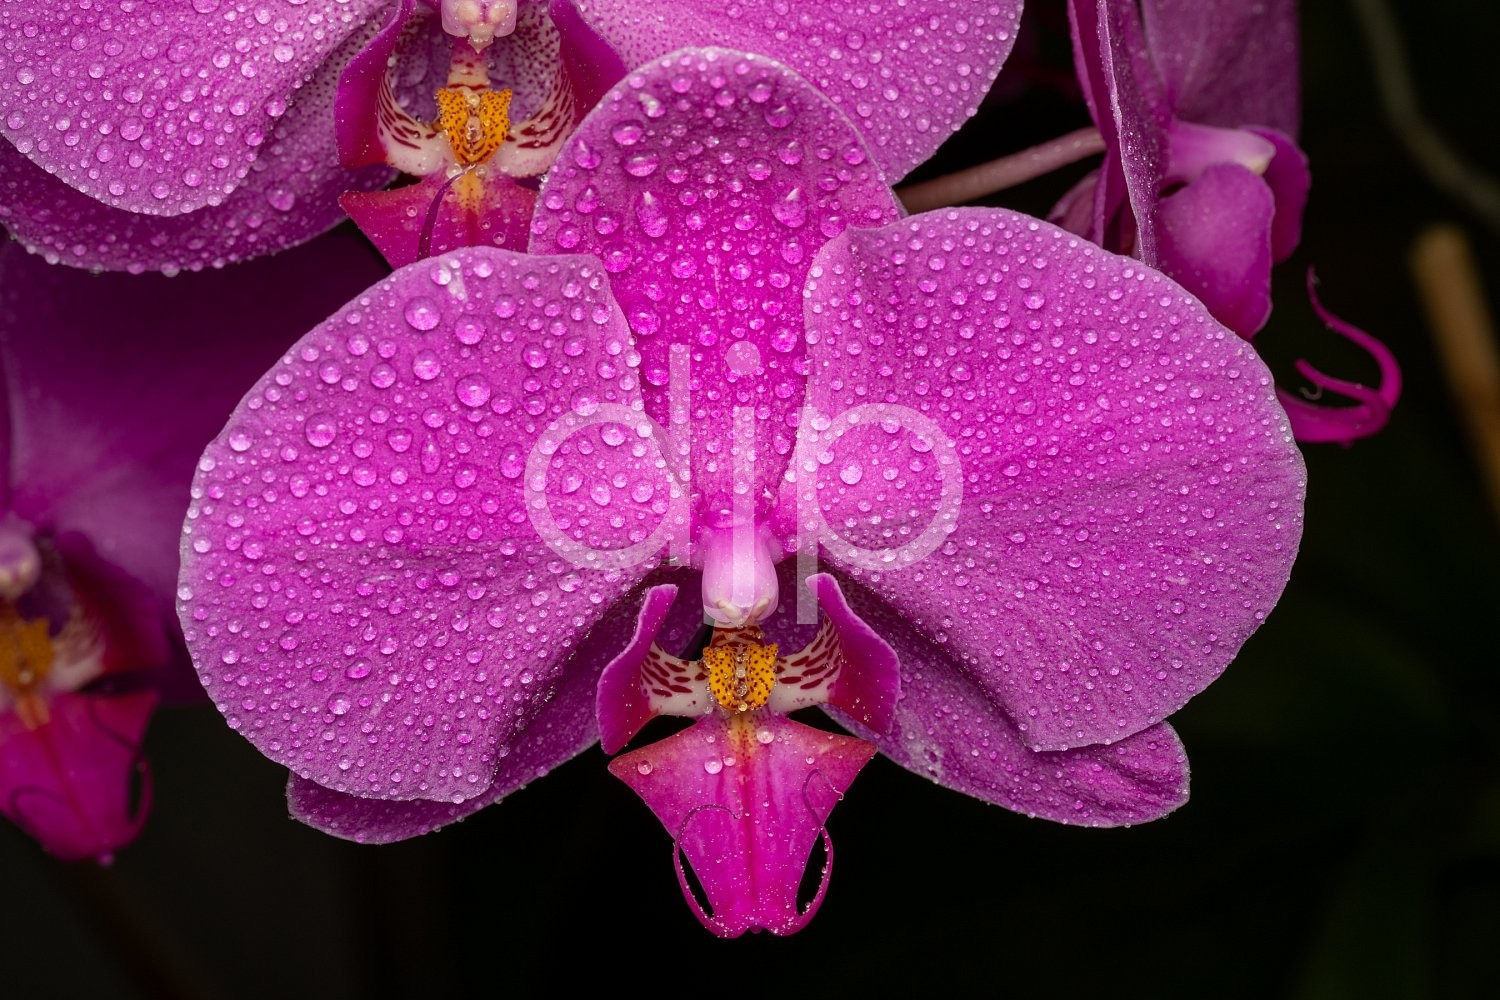 Sugar Land, djonesphoto, excursions with djp, flowers, macro, orchid, orchids, personal, pink, quarantine, D Jones Photography